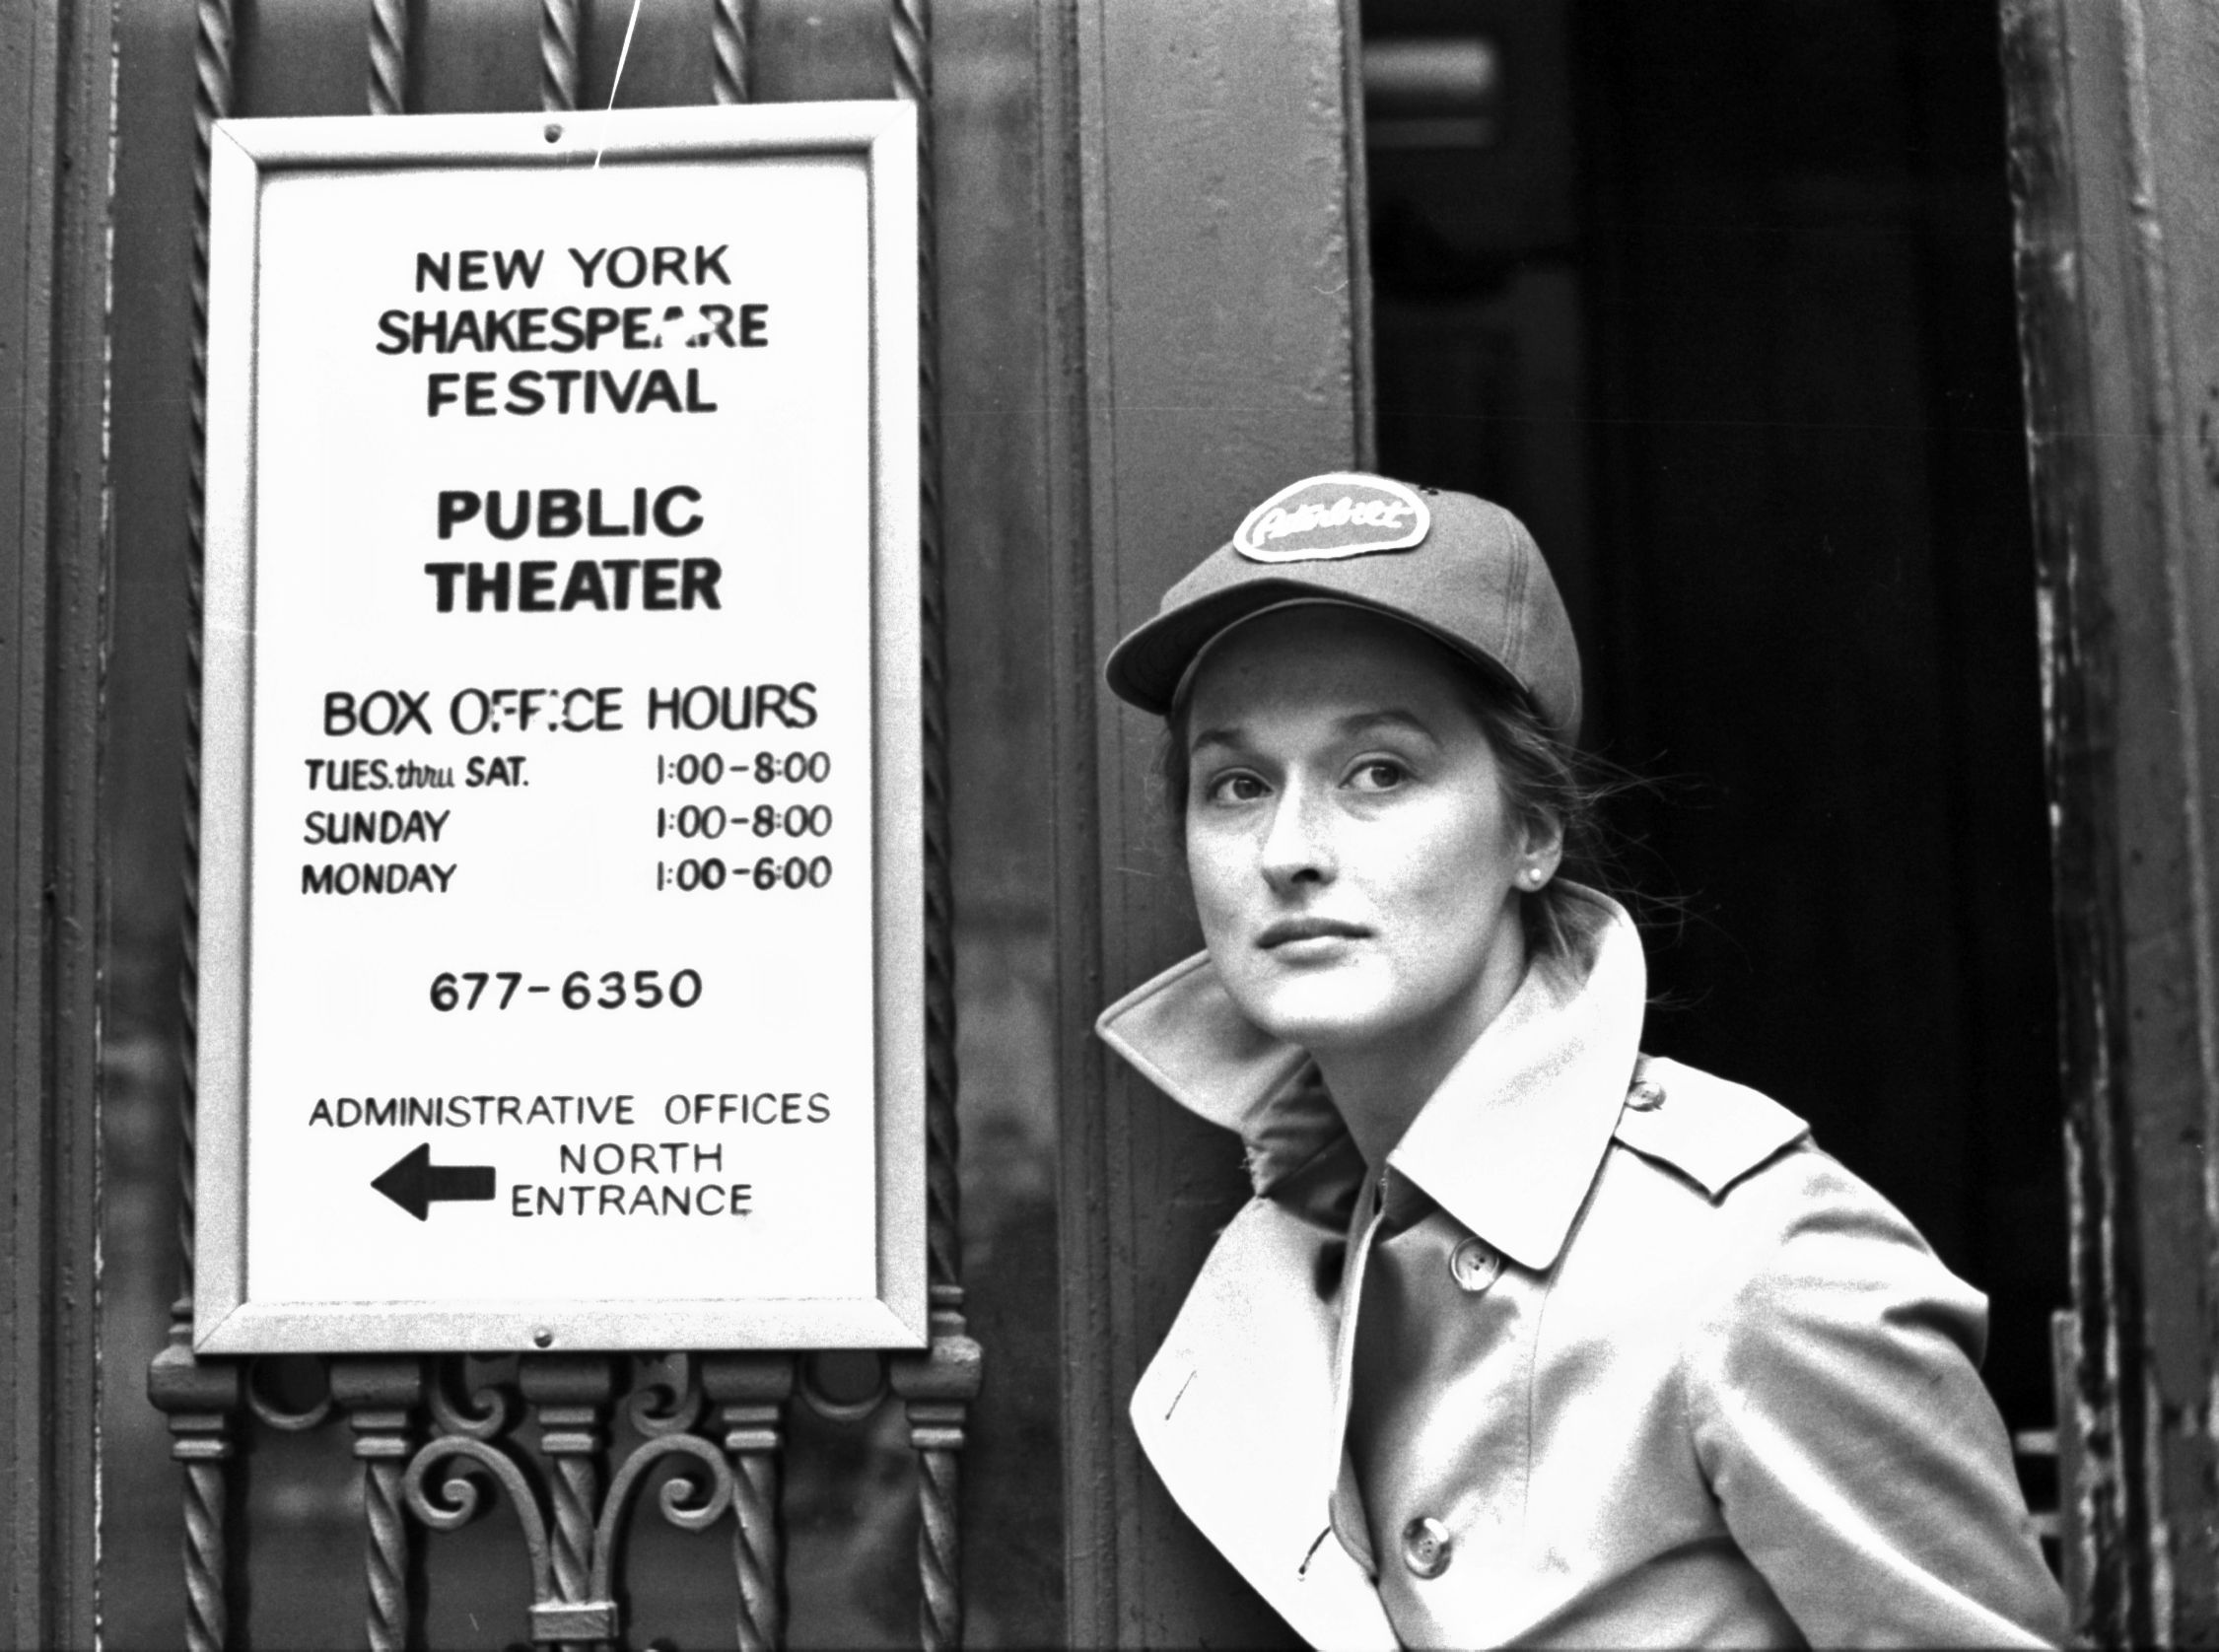 Meryl Streep at Joseph Papp's Public Theater in January 1979 | Source: Getty Images